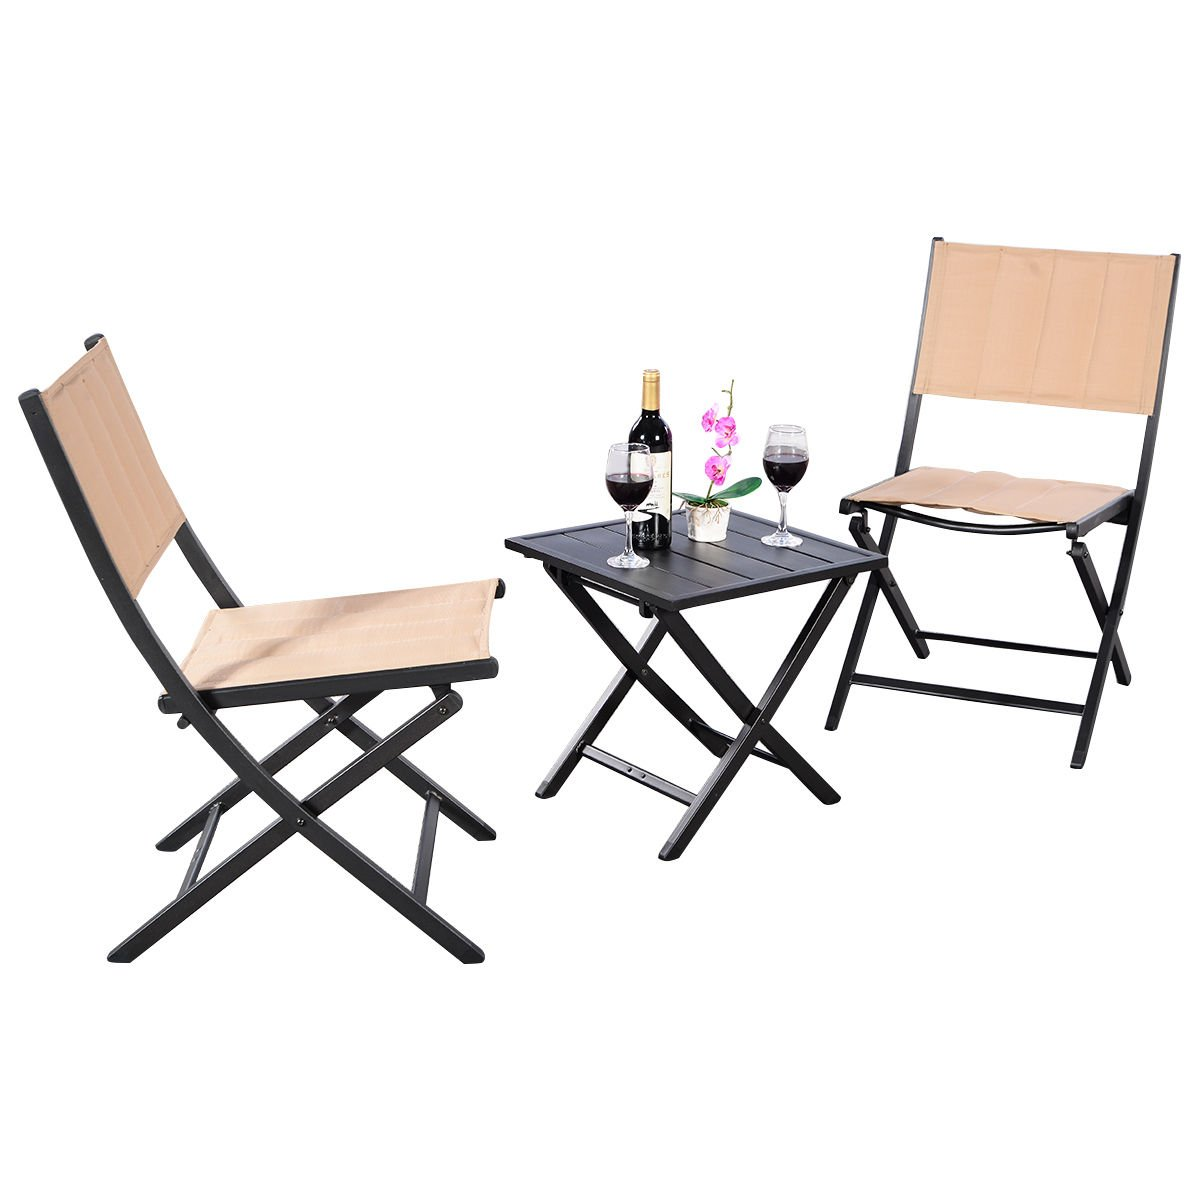 3PCS Outdoor Set Folding Square Table Chairs Patio Bistro Furniture Garden